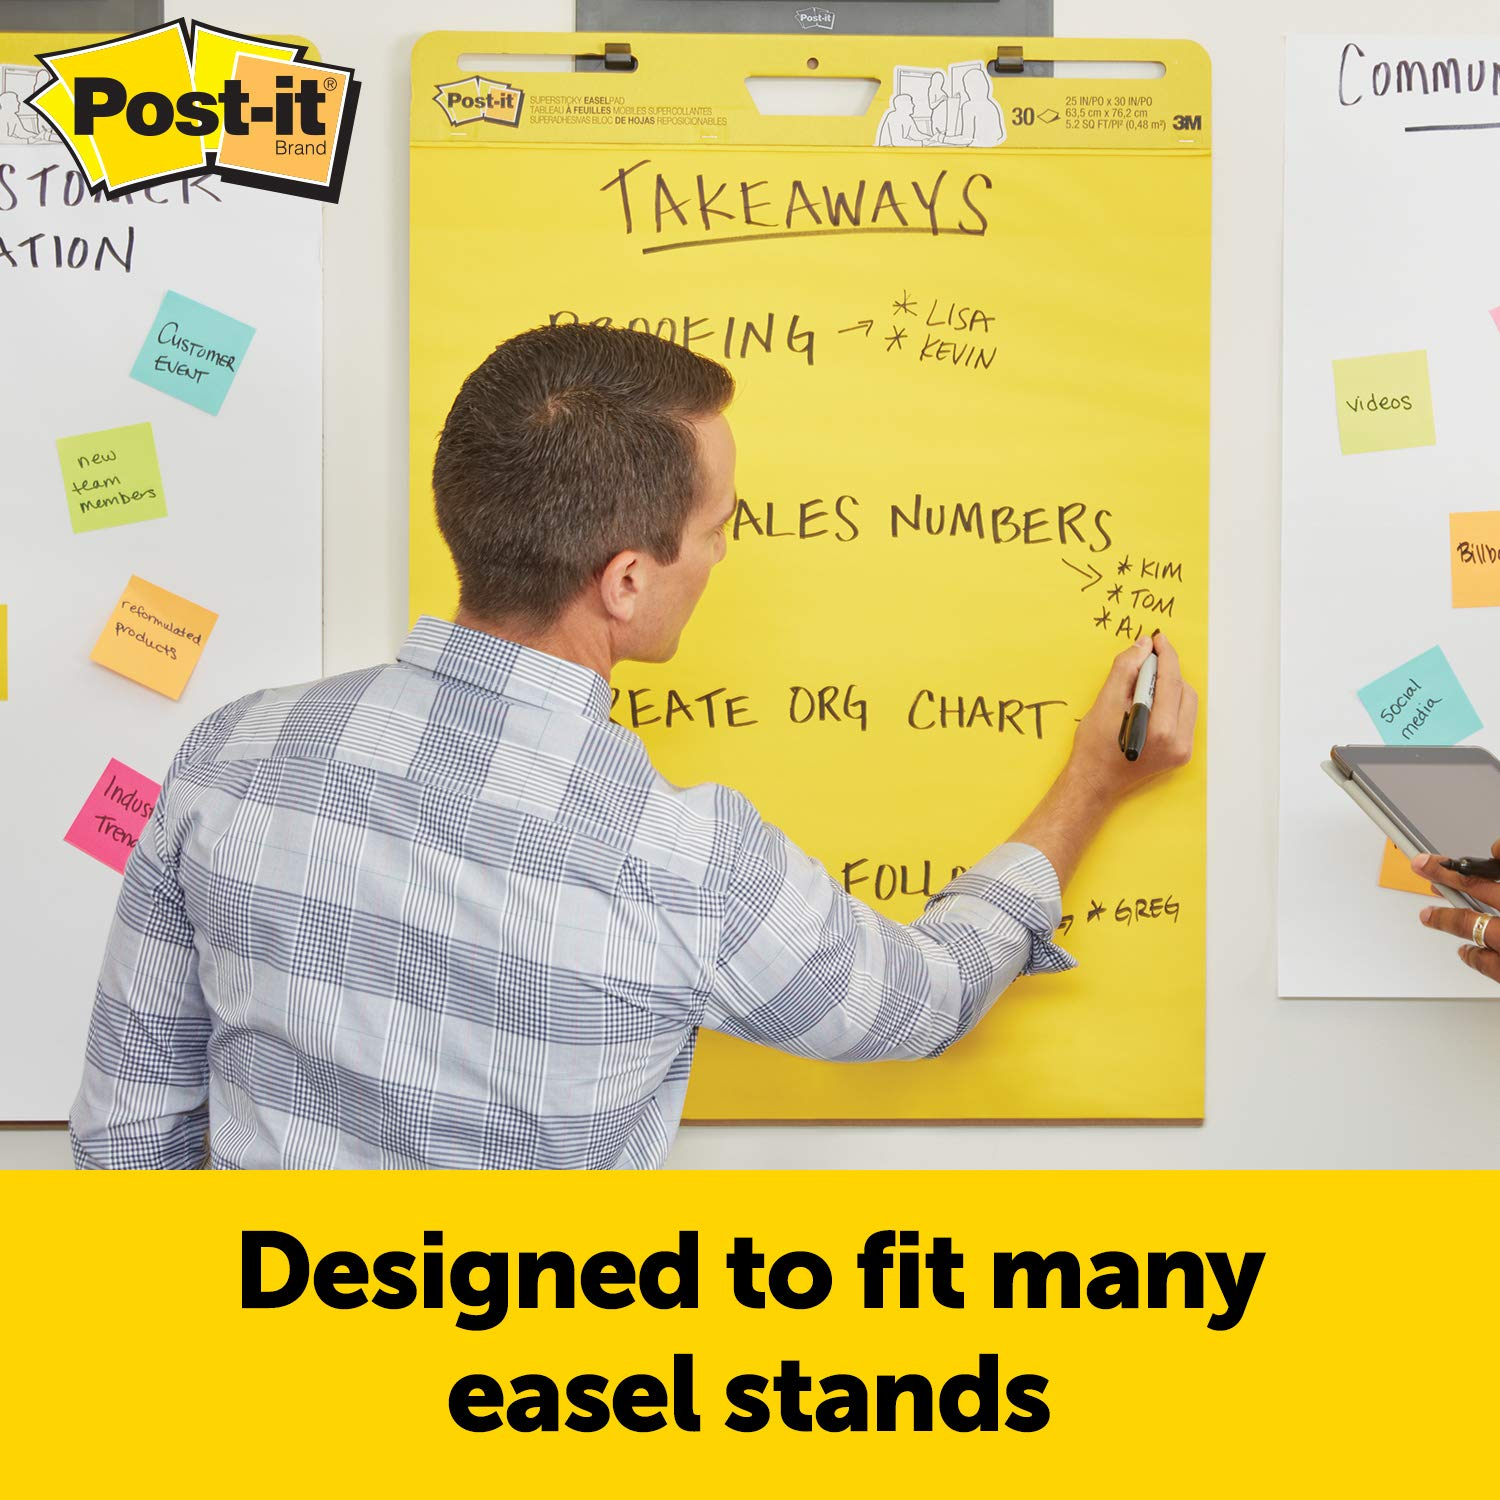 Post-it Super Sticky Easel Pad, 25 x 30 Inches, 25 Sheets/Pad, 3 Pads (559YW-3PK), Large Bright Yellow Premium Self Stick Flip Chart Paper, Super Sticking Power by Post-it (Image #5)